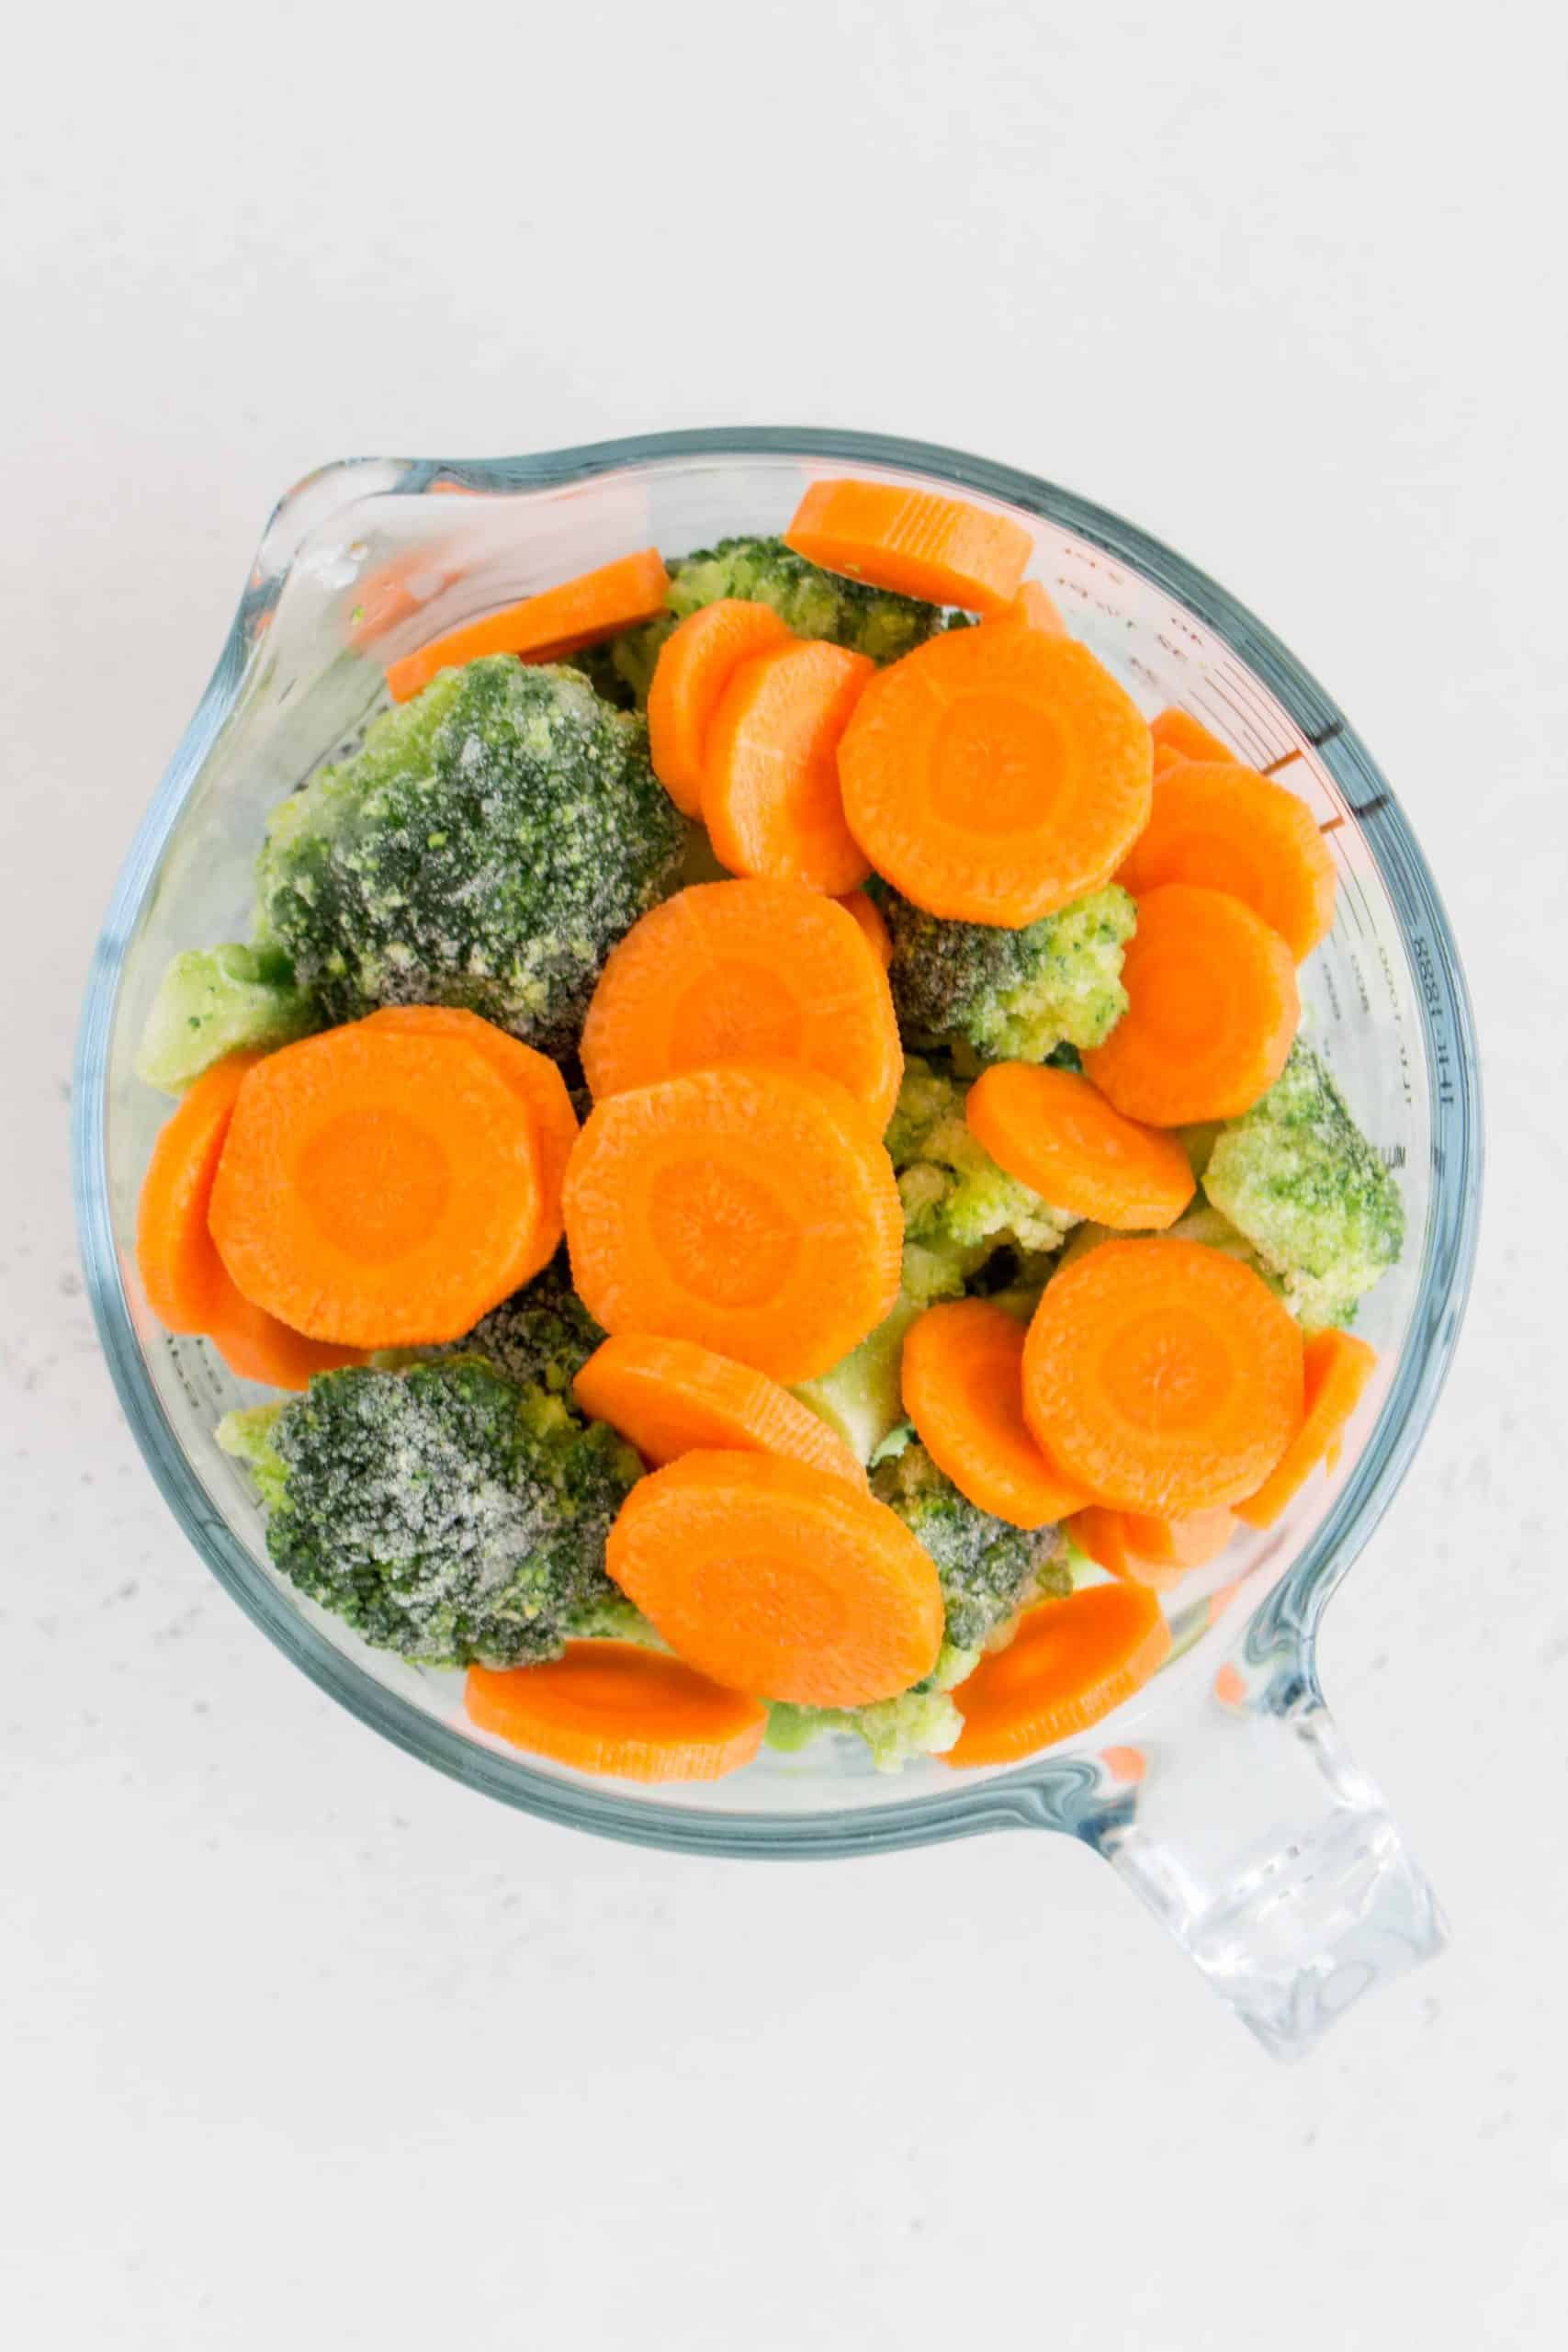 broccoli florets and carrots in a measuring cup.